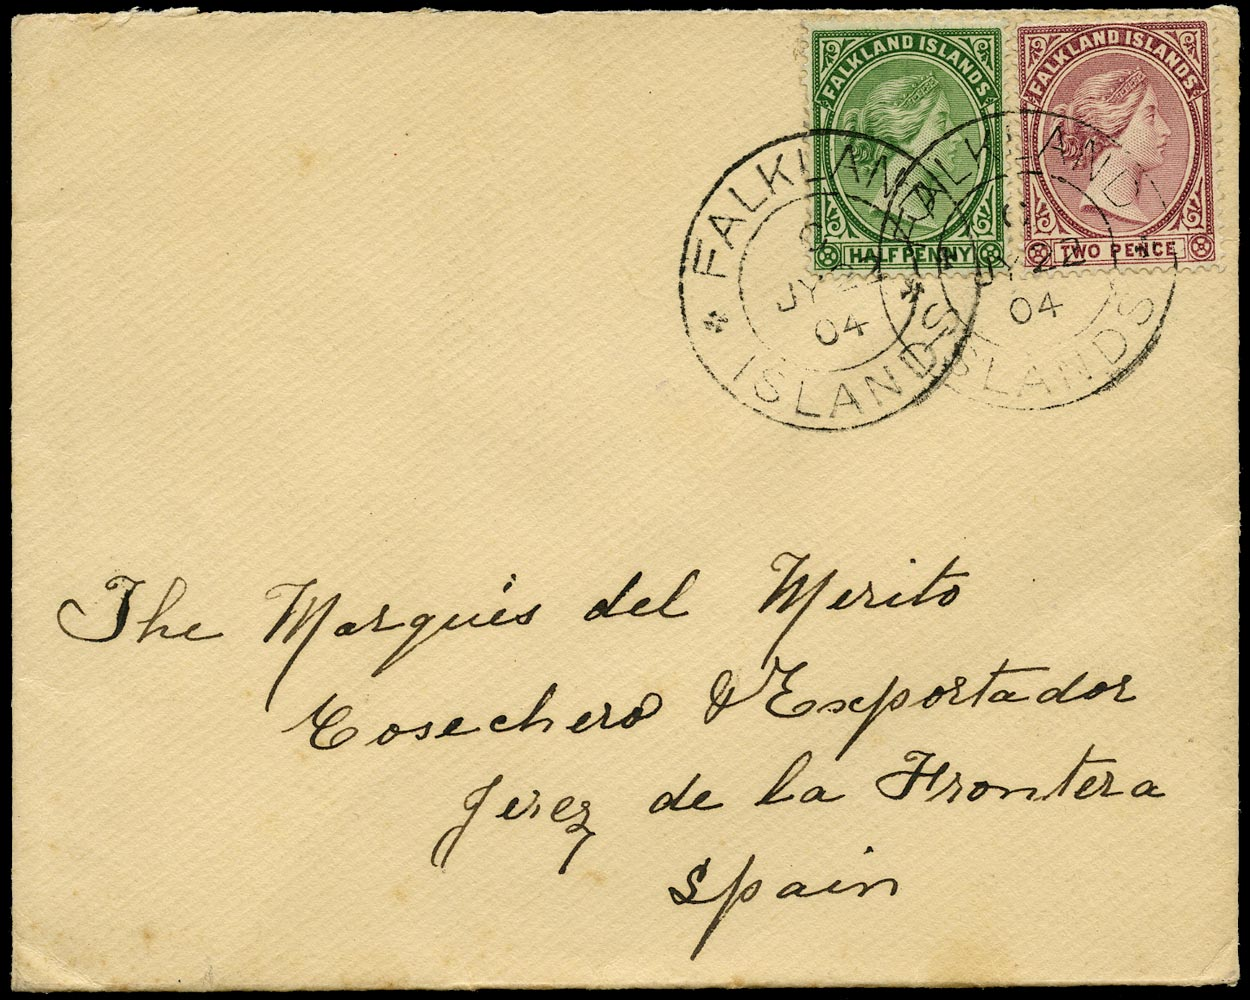 FALKLAND ISLANDS 1904  SG17b, 25 Cover from Stanley to Jerez franked at 2½d foreign rate